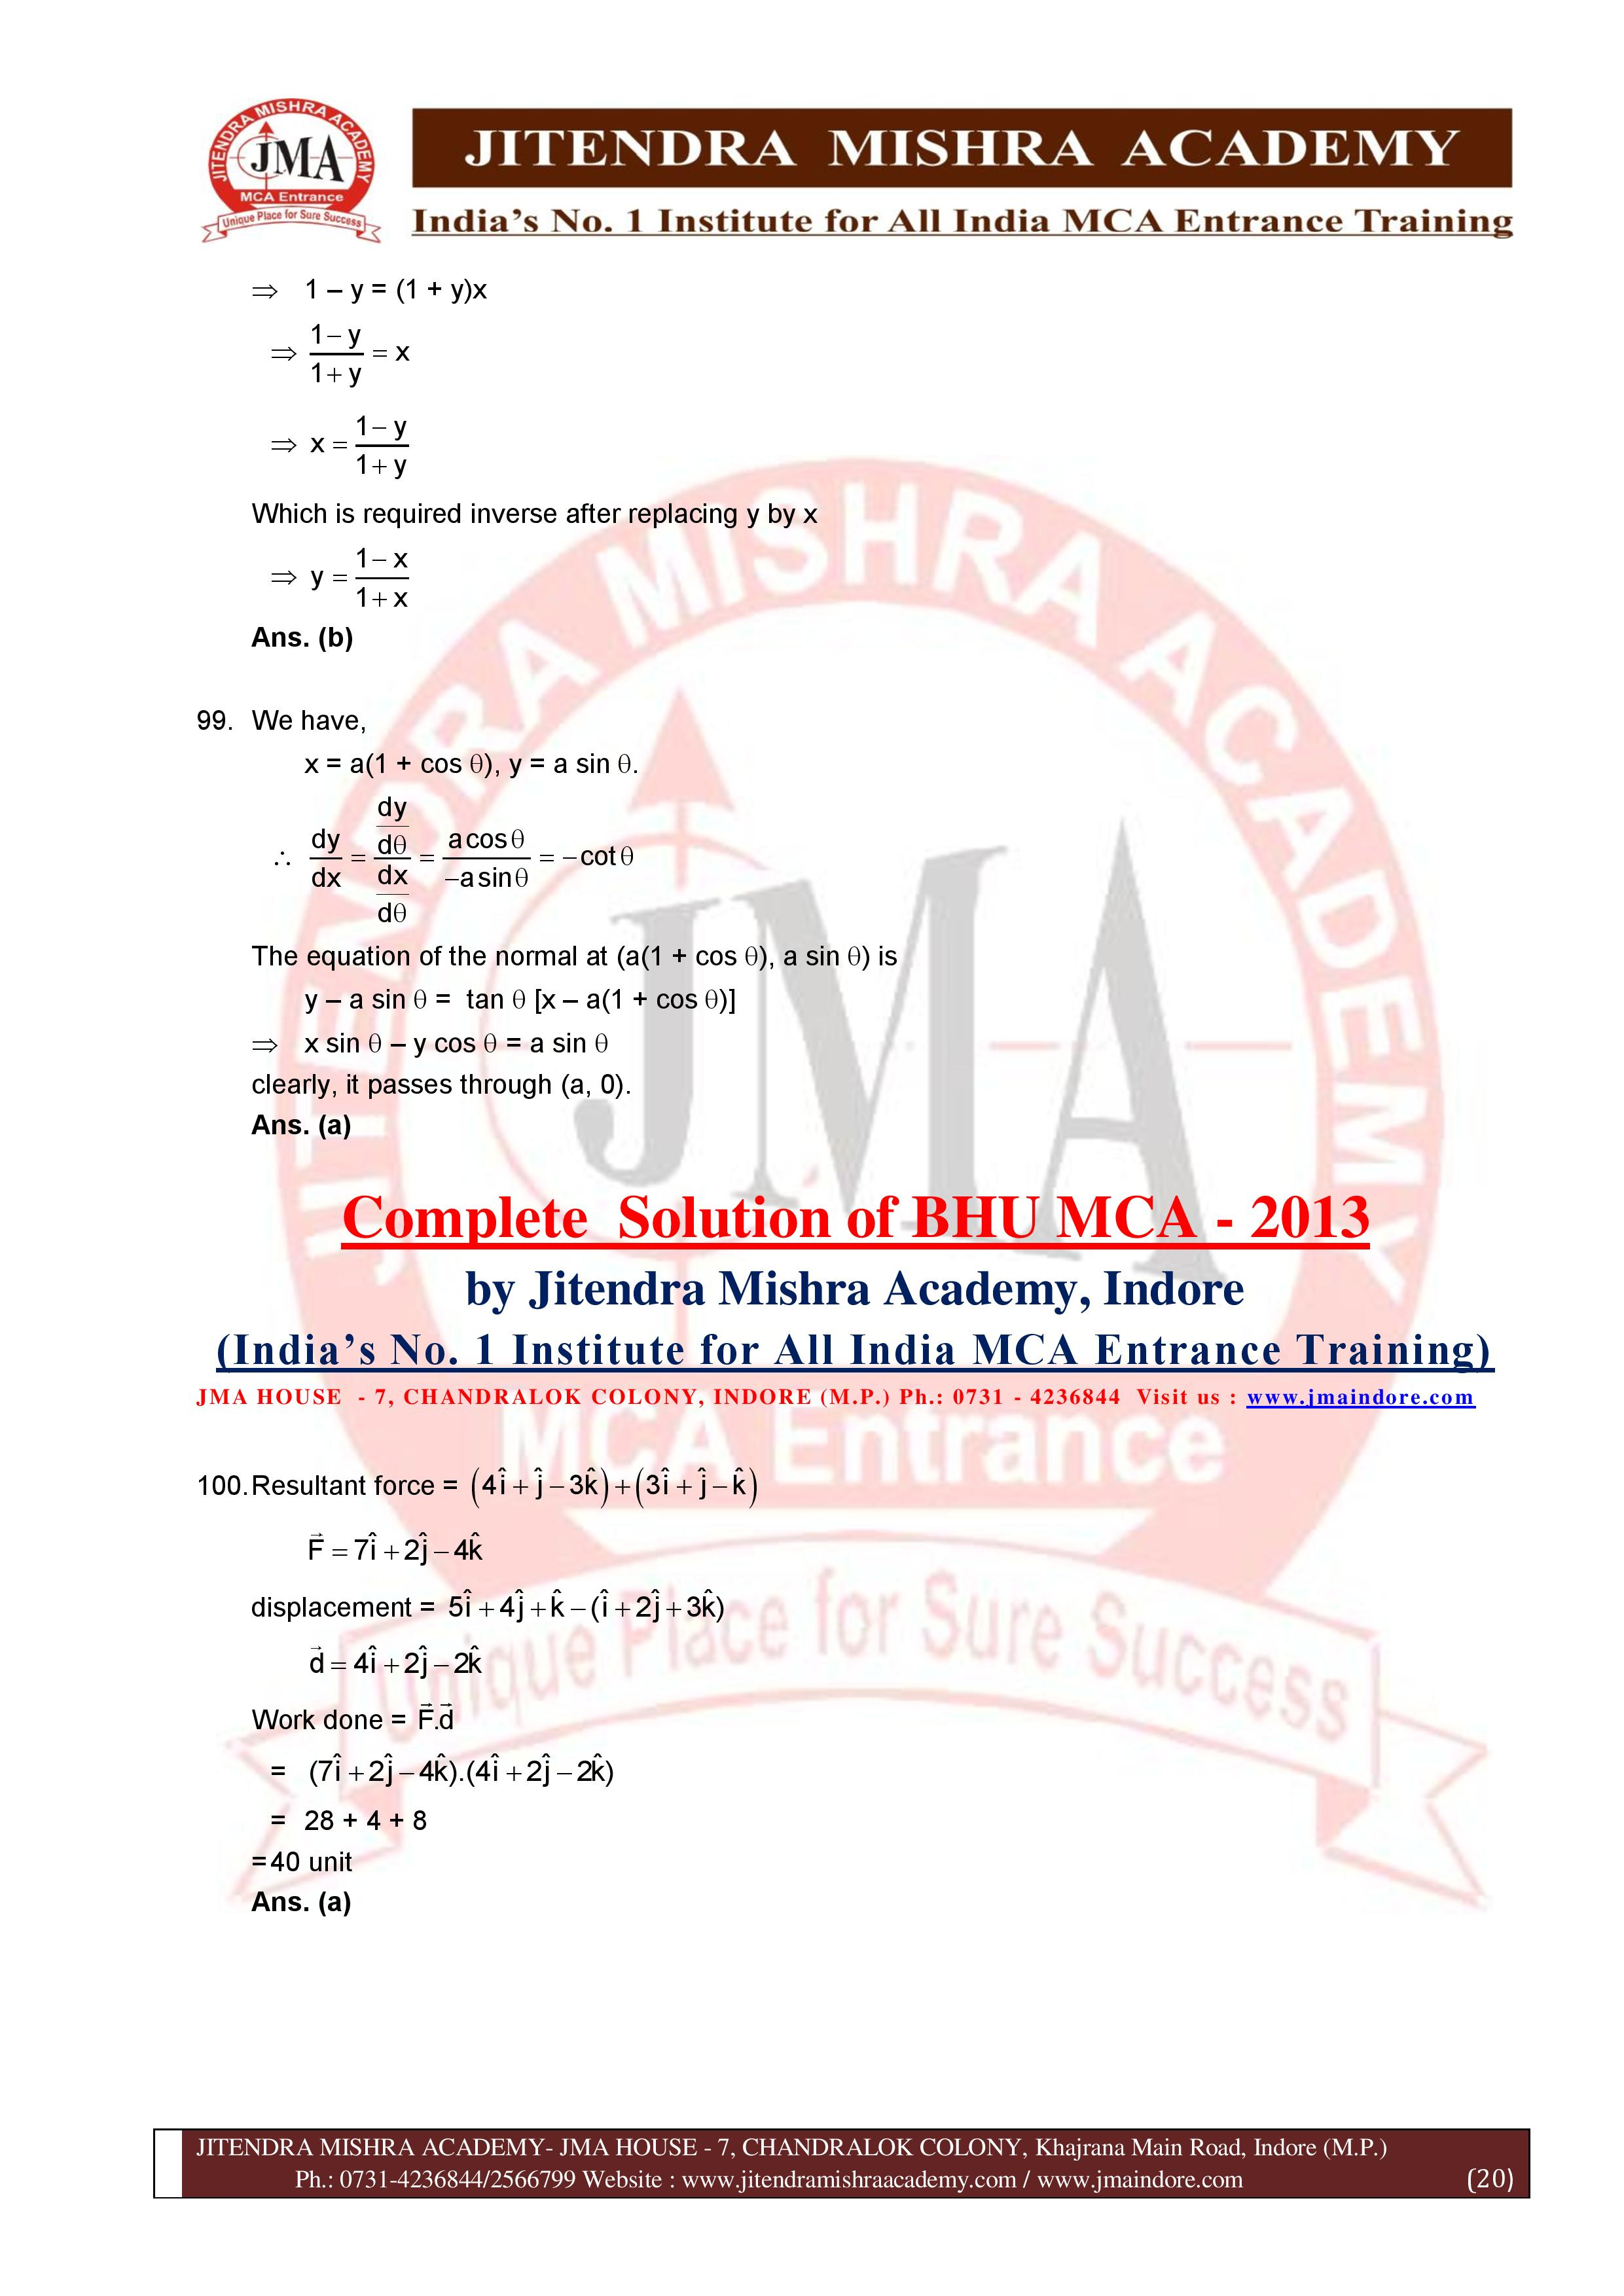 BHU 2013 SOLUTION (SET - 3) (06.07.16)-page-020